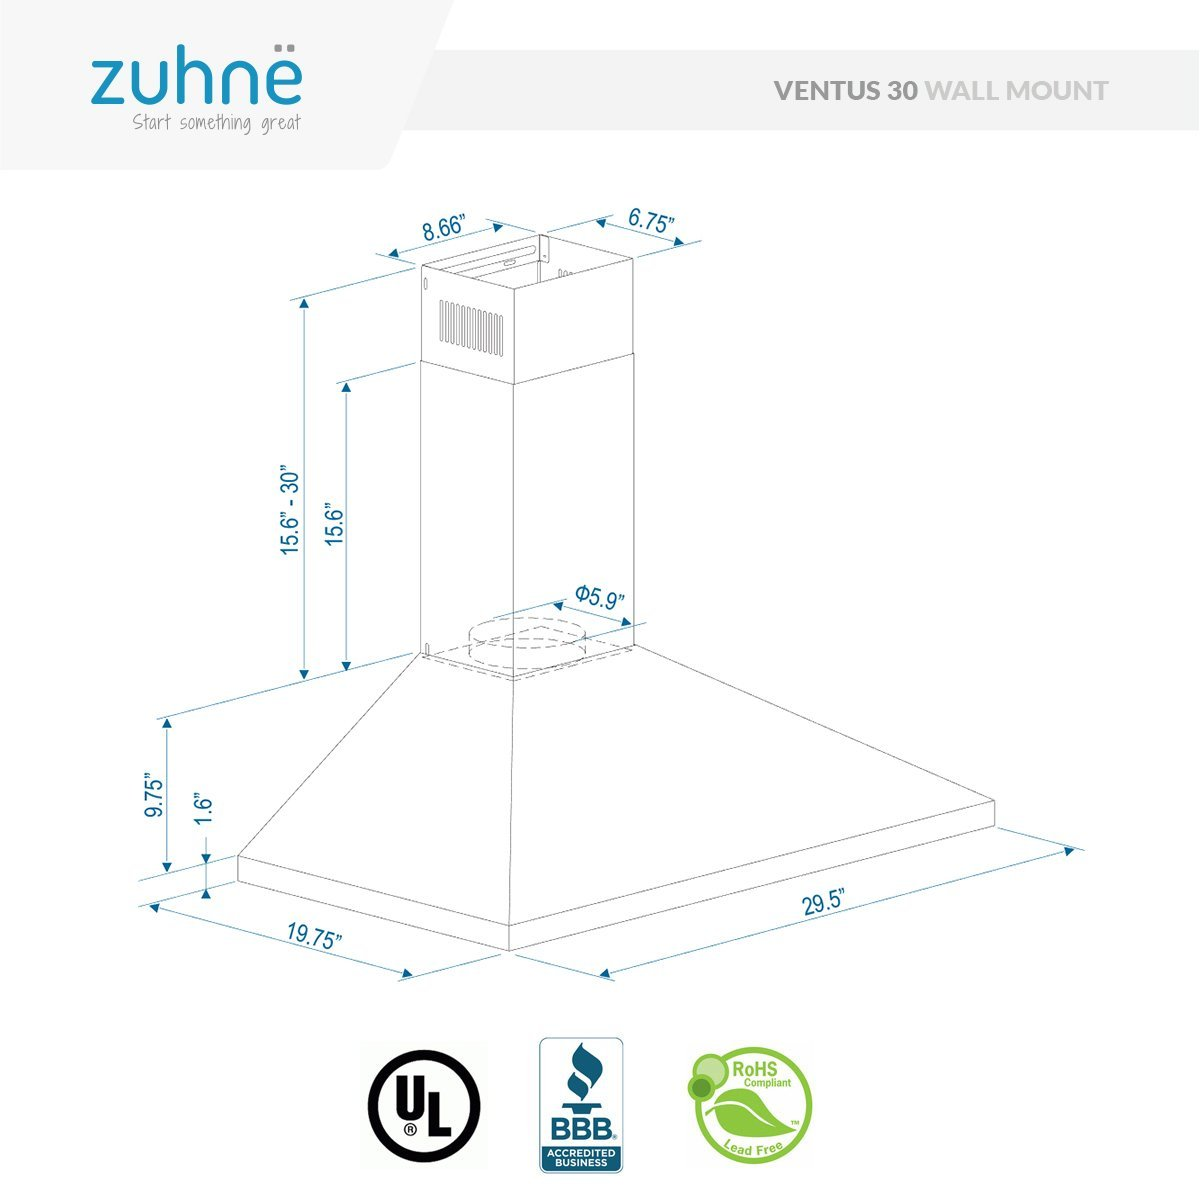 amazon zuhne ventus 30 inch kitchen wall mount ducted ductless Design Your Own Kitchen Island amazon zuhne ventus 30 inch kitchen wall mount ducted ductless stainless steel range hood or stove vent with energy saving touch control led lights